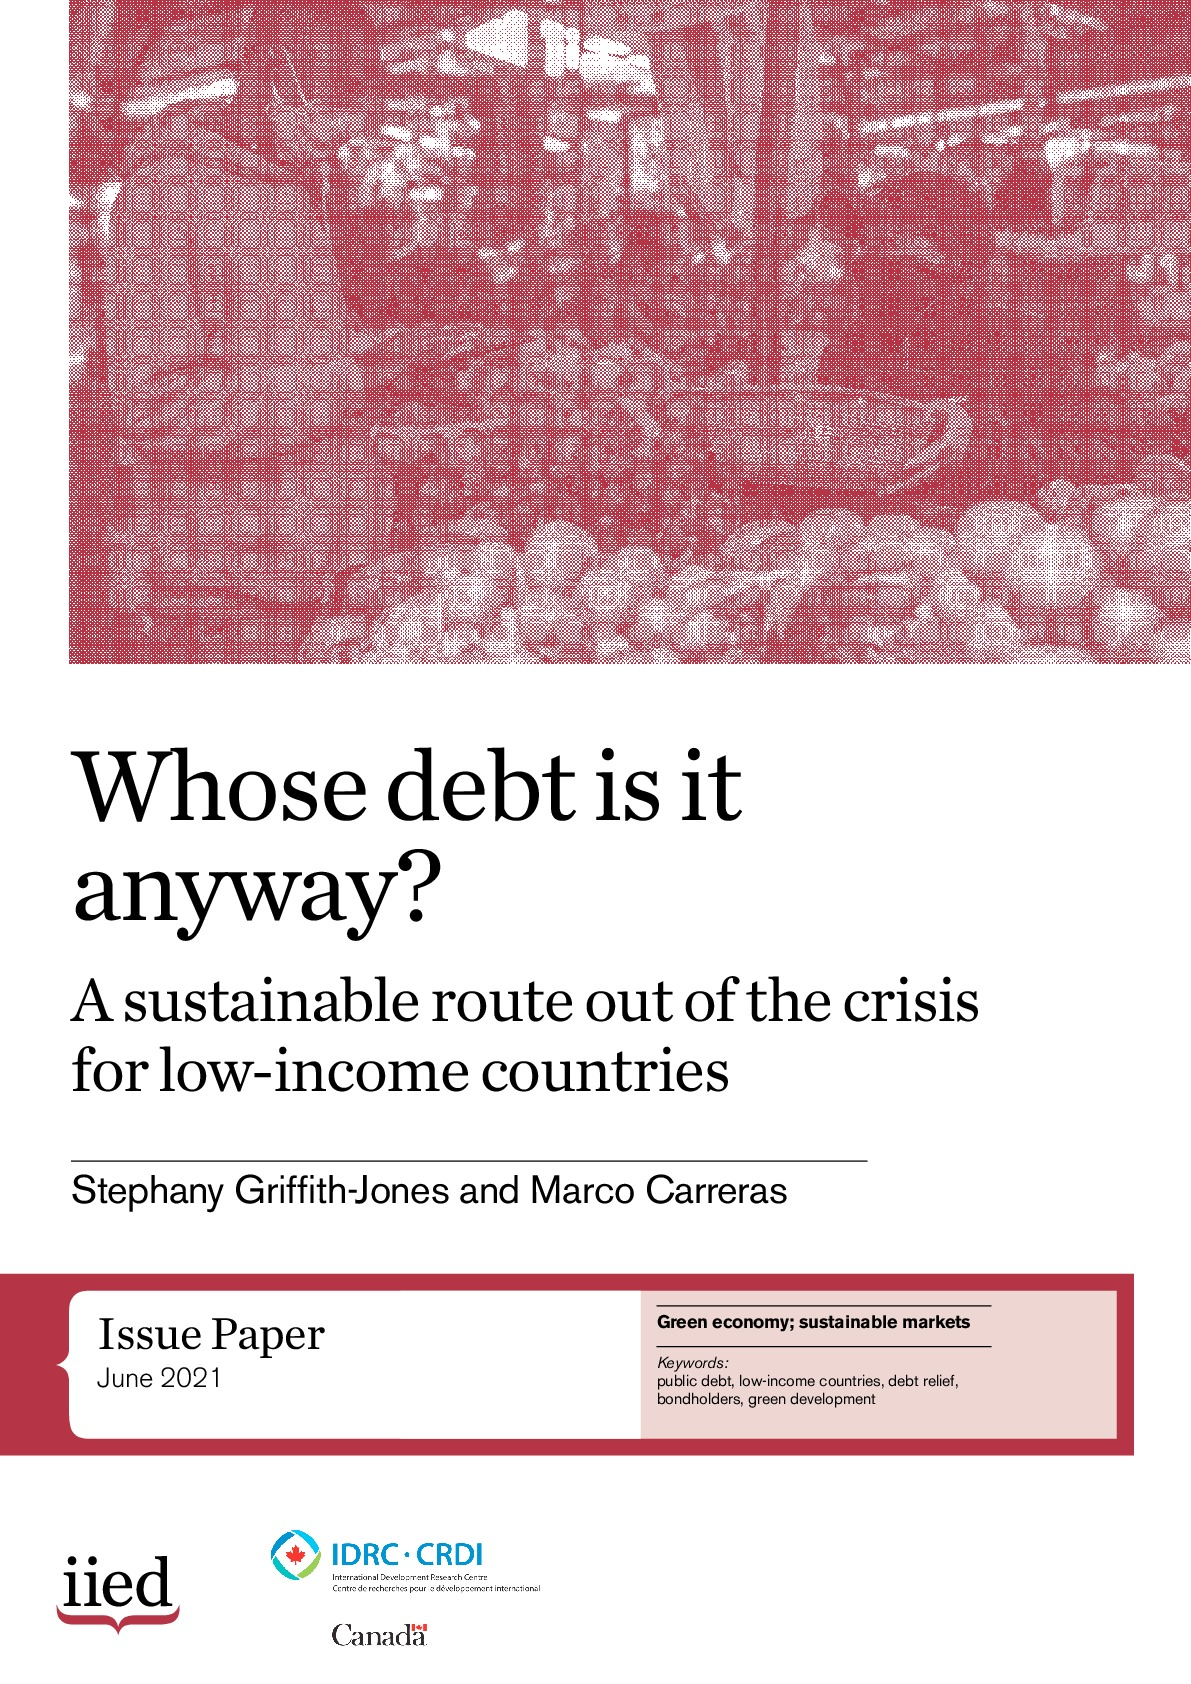 Whose debt is it anyway? A sustainable route out of the crisis for low-income countries